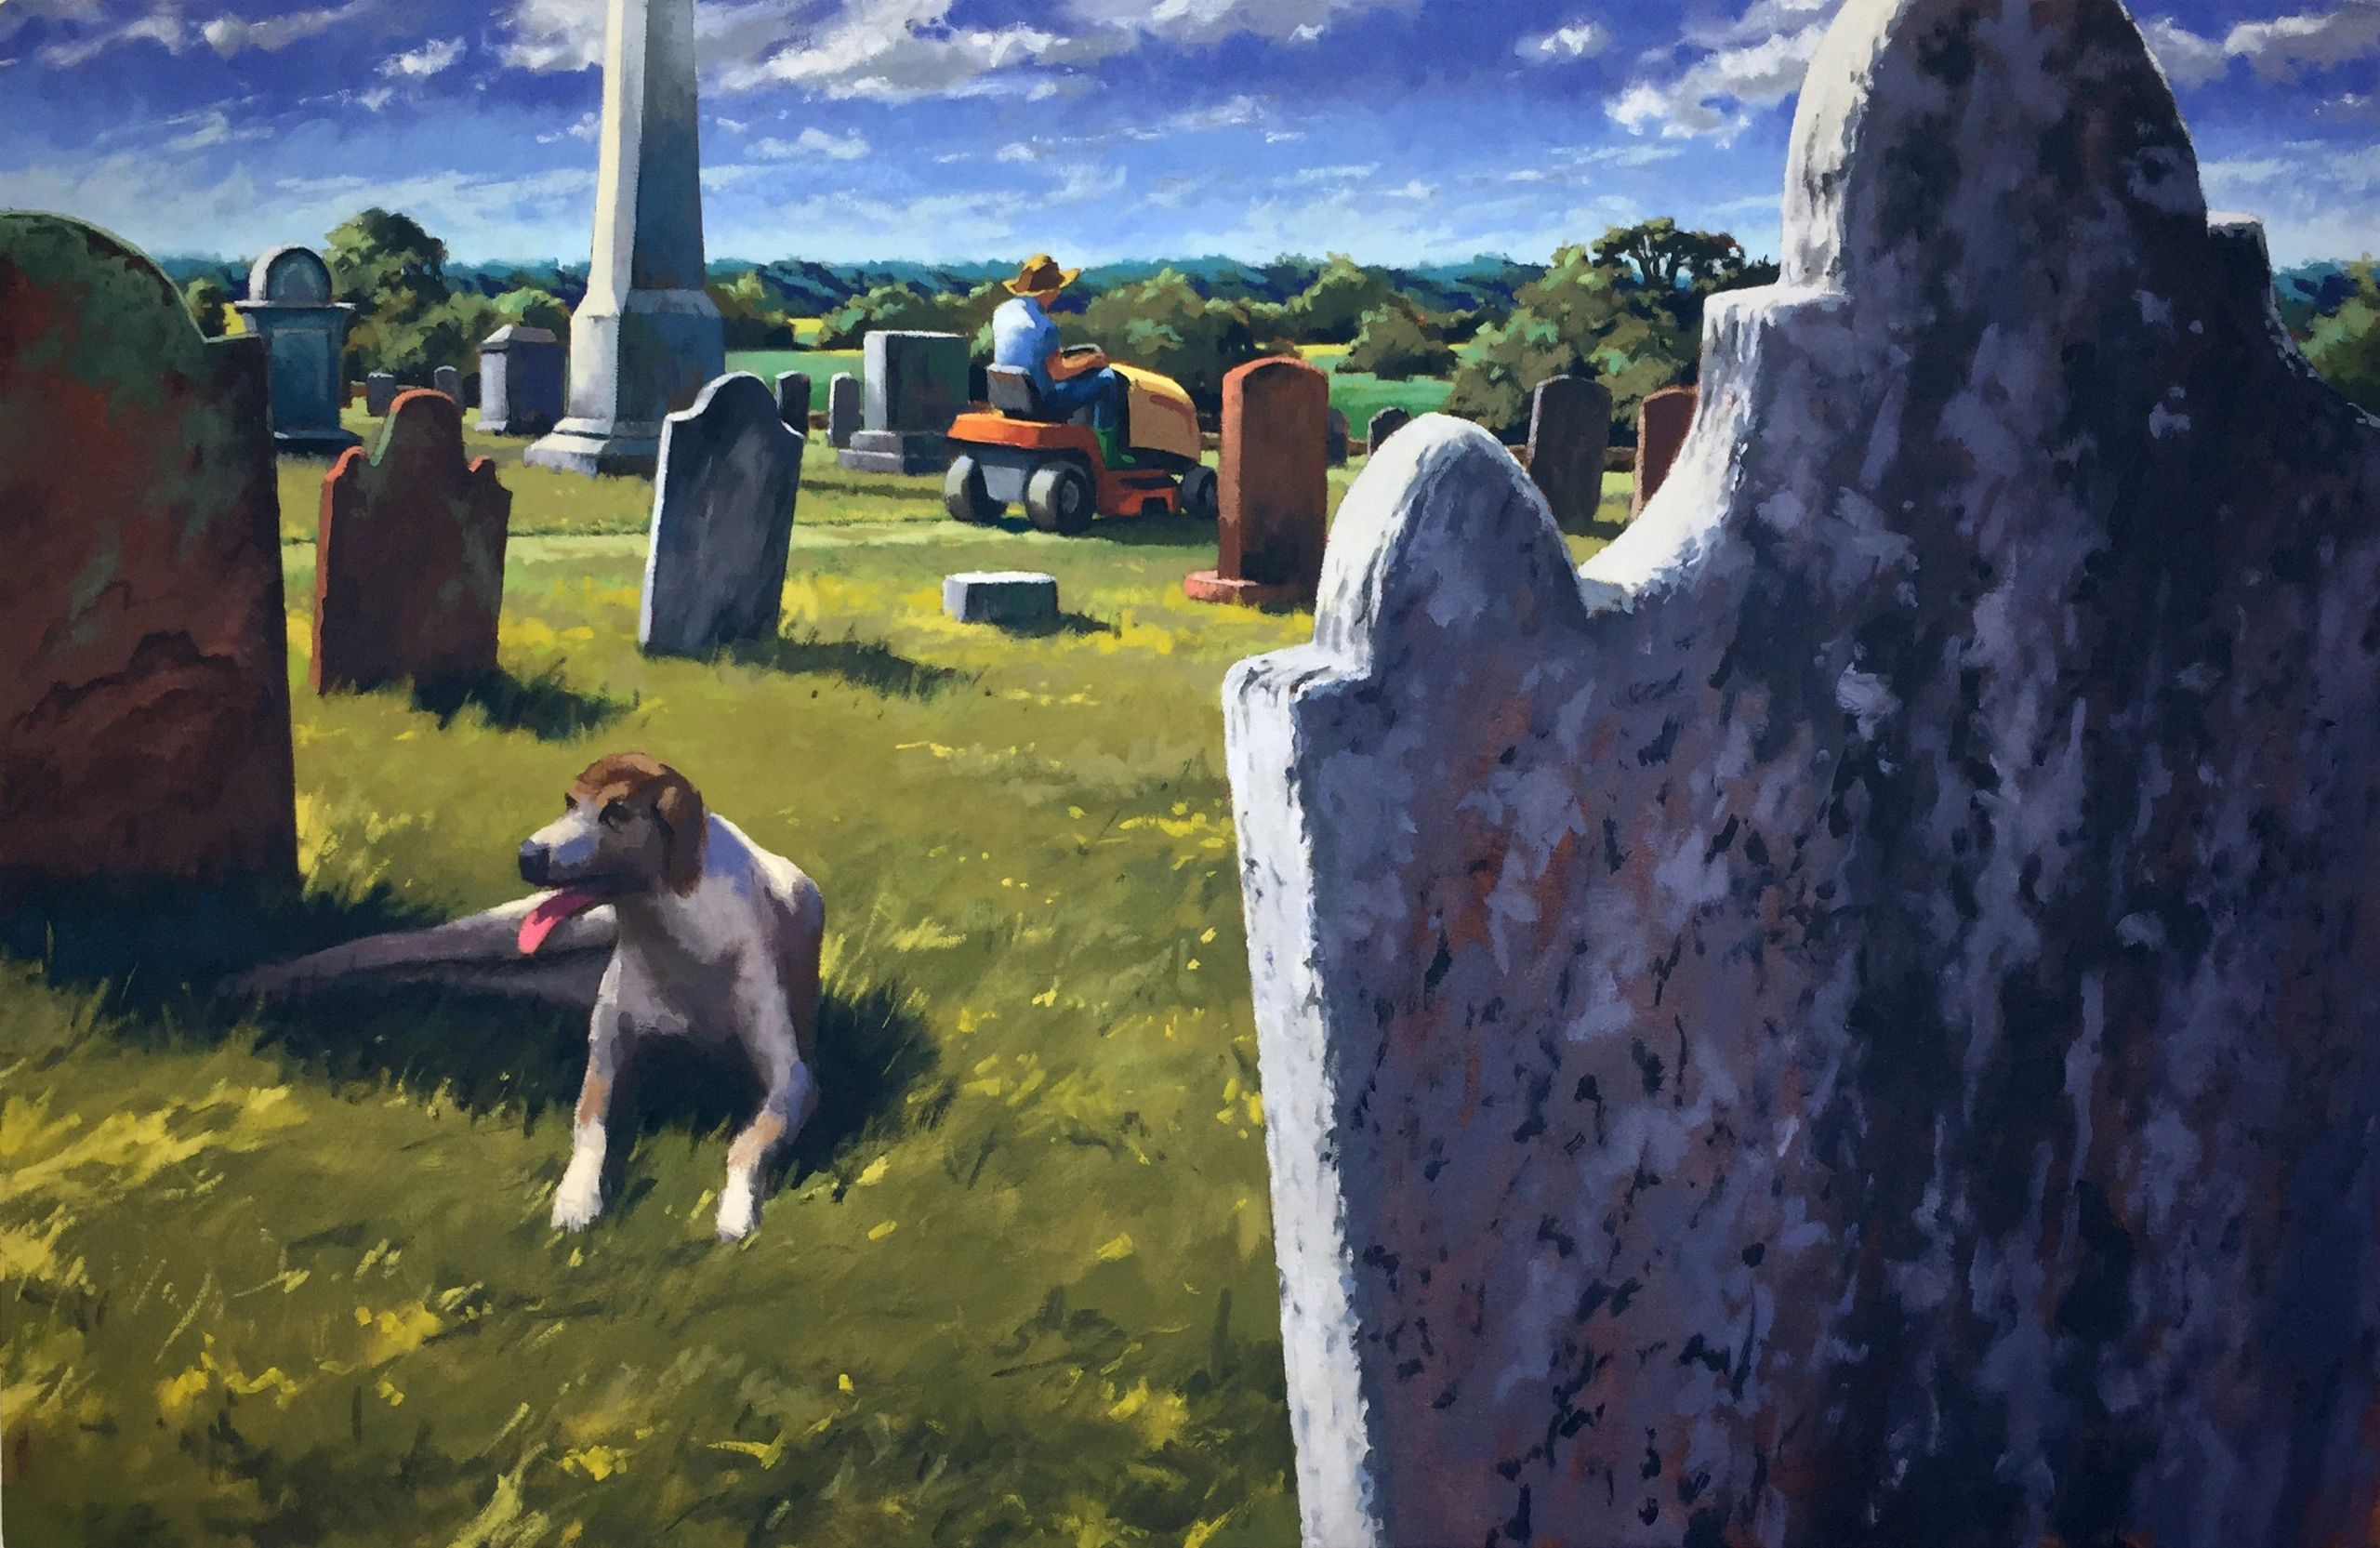 a painting of a cemetery in strong sunlight with a dog panting in the shade of a headstone.